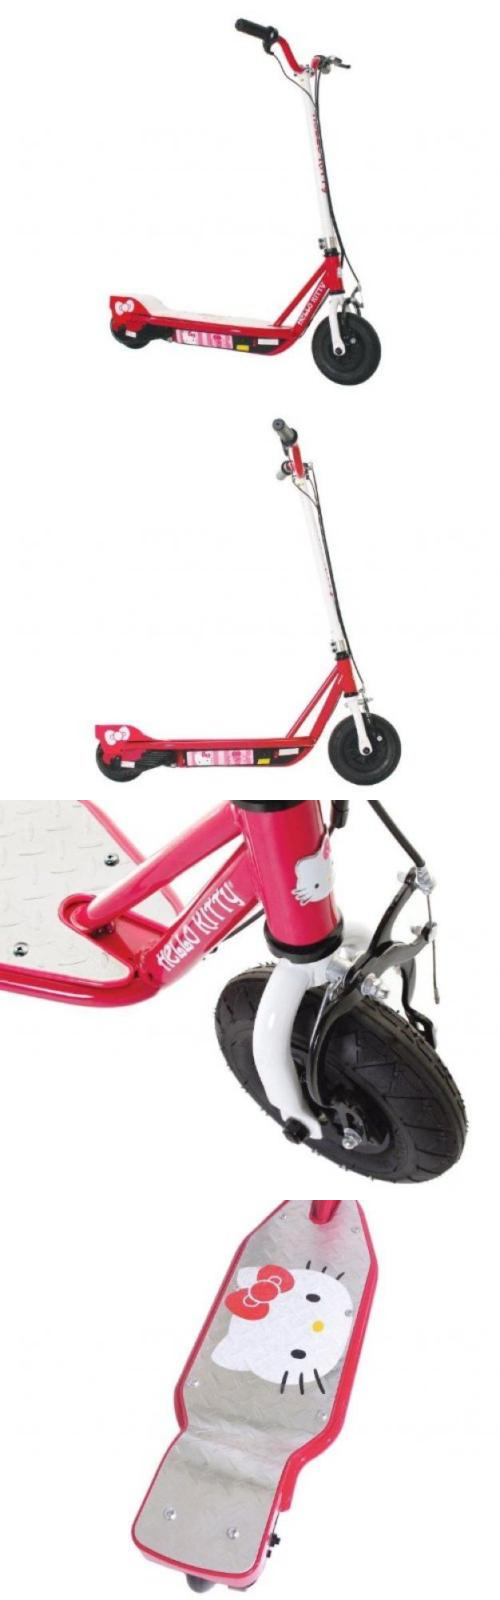 Other Scooters 11329 Hello Kitty Su Electric Scooter Pink White